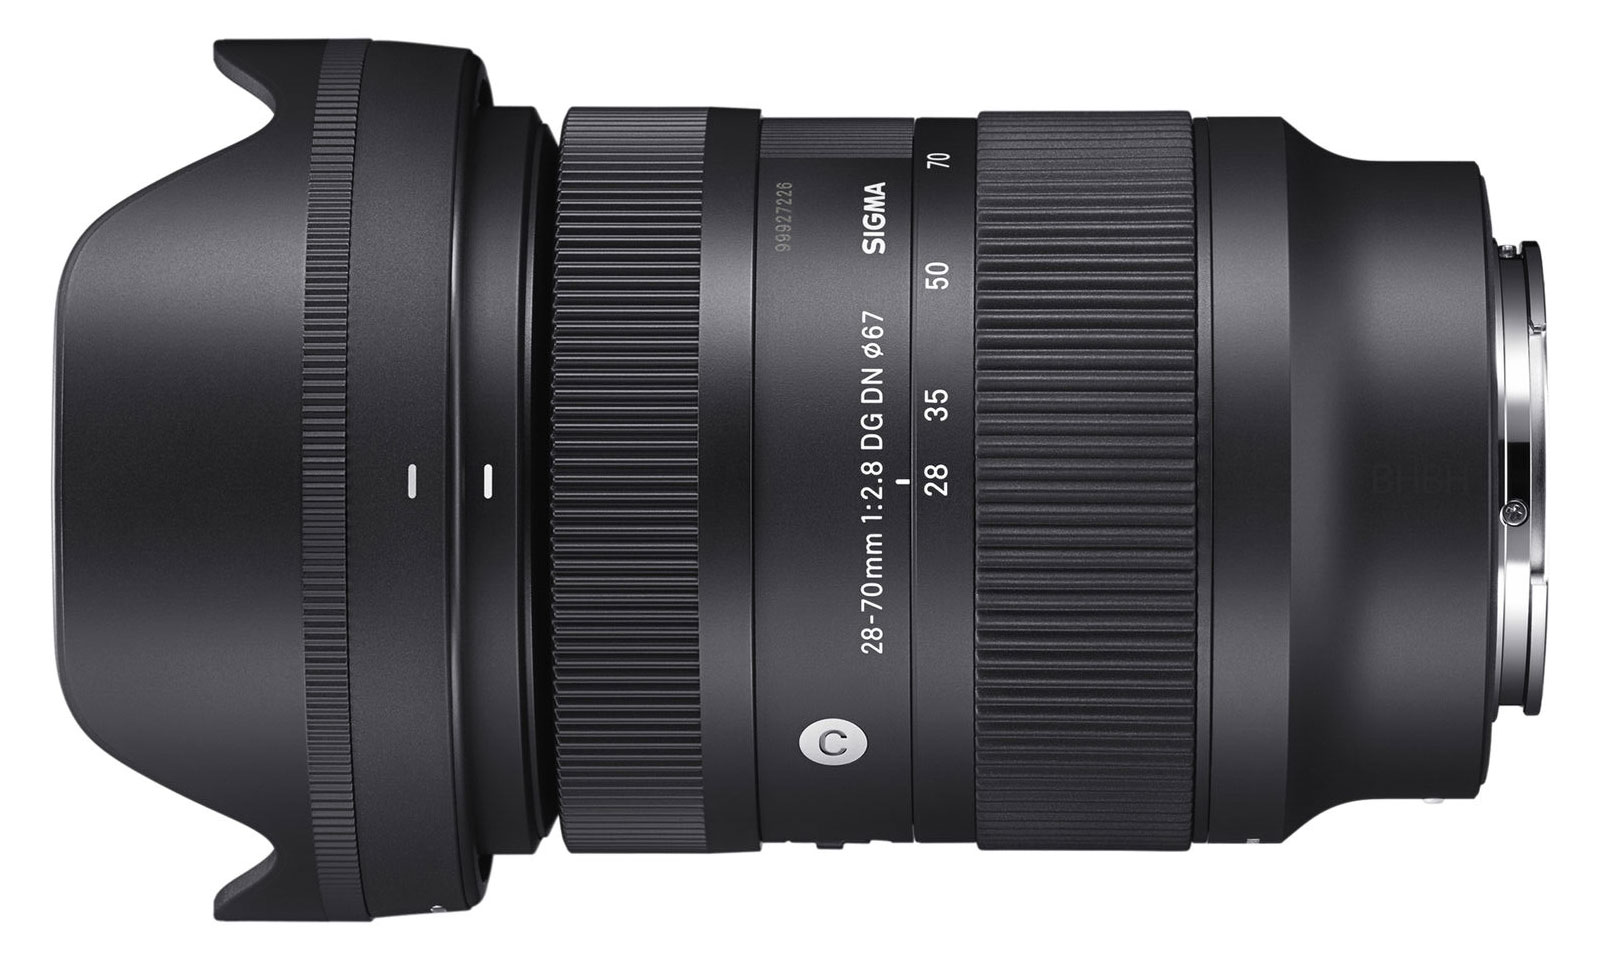 Sigma 28-70mm F2.8 DG DN Contemporary E-mount lens